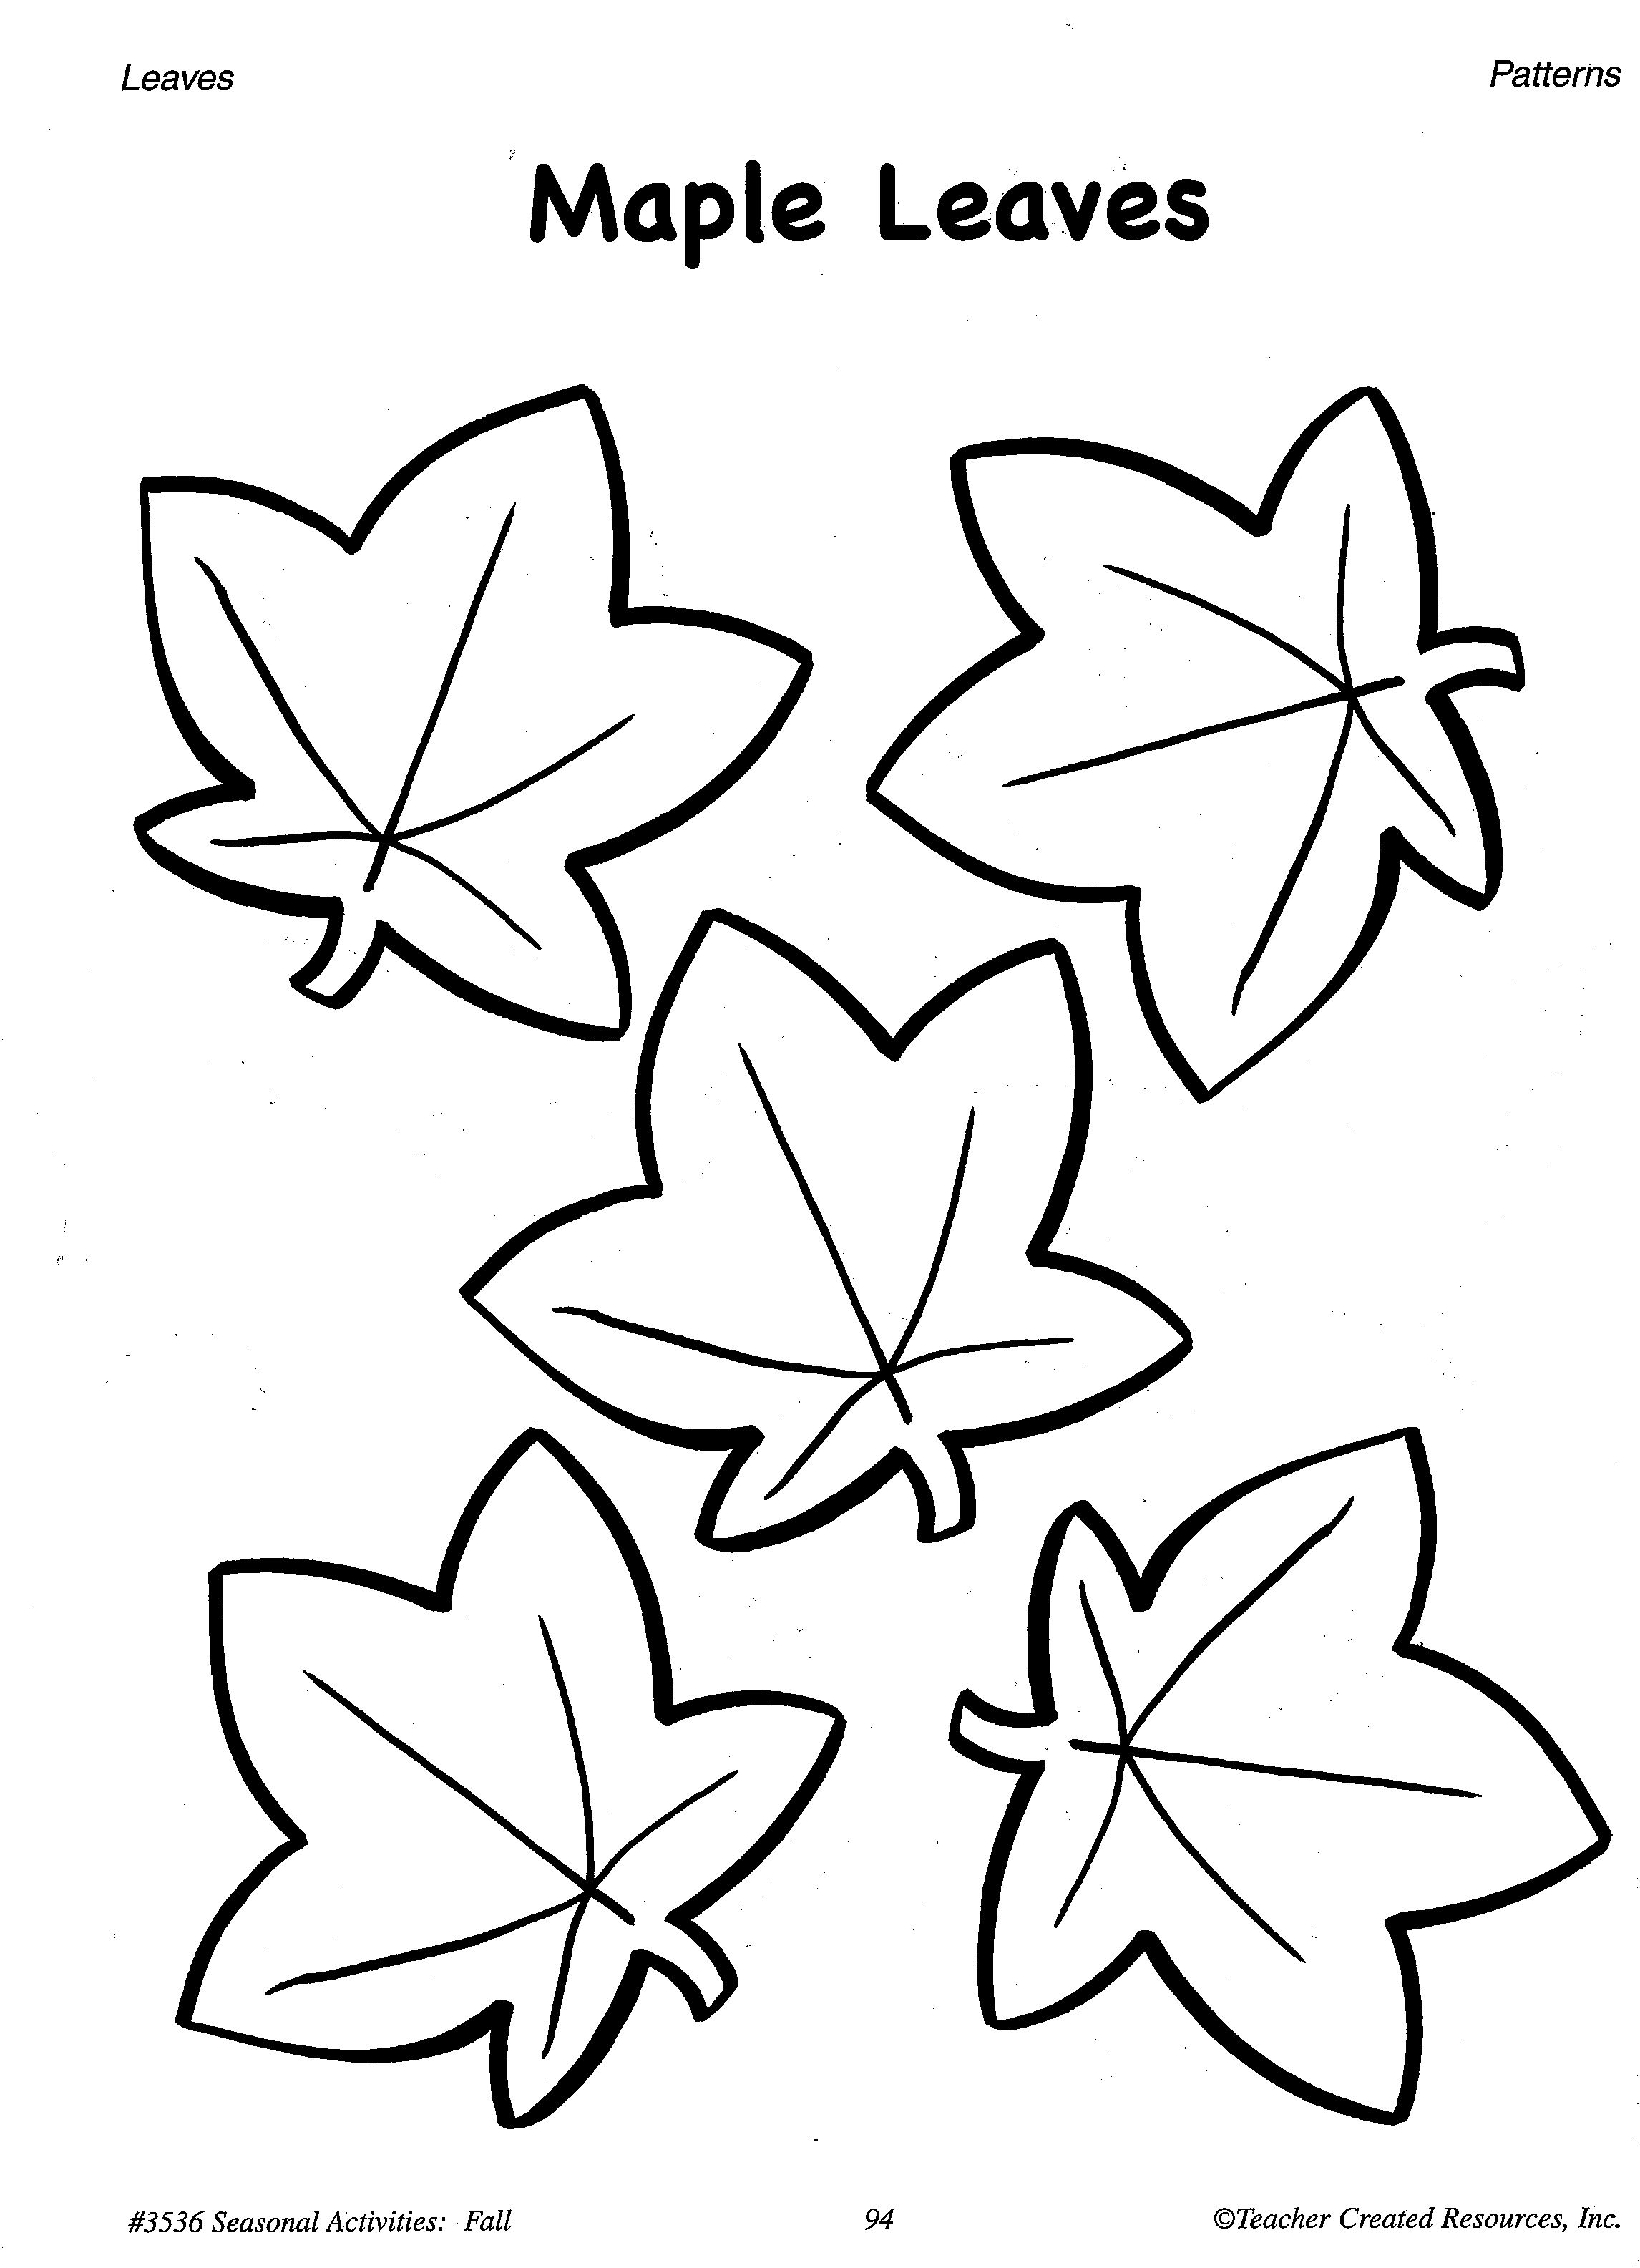 - Printable Fall Leaves Patterns A Sample From The Teacher Resource